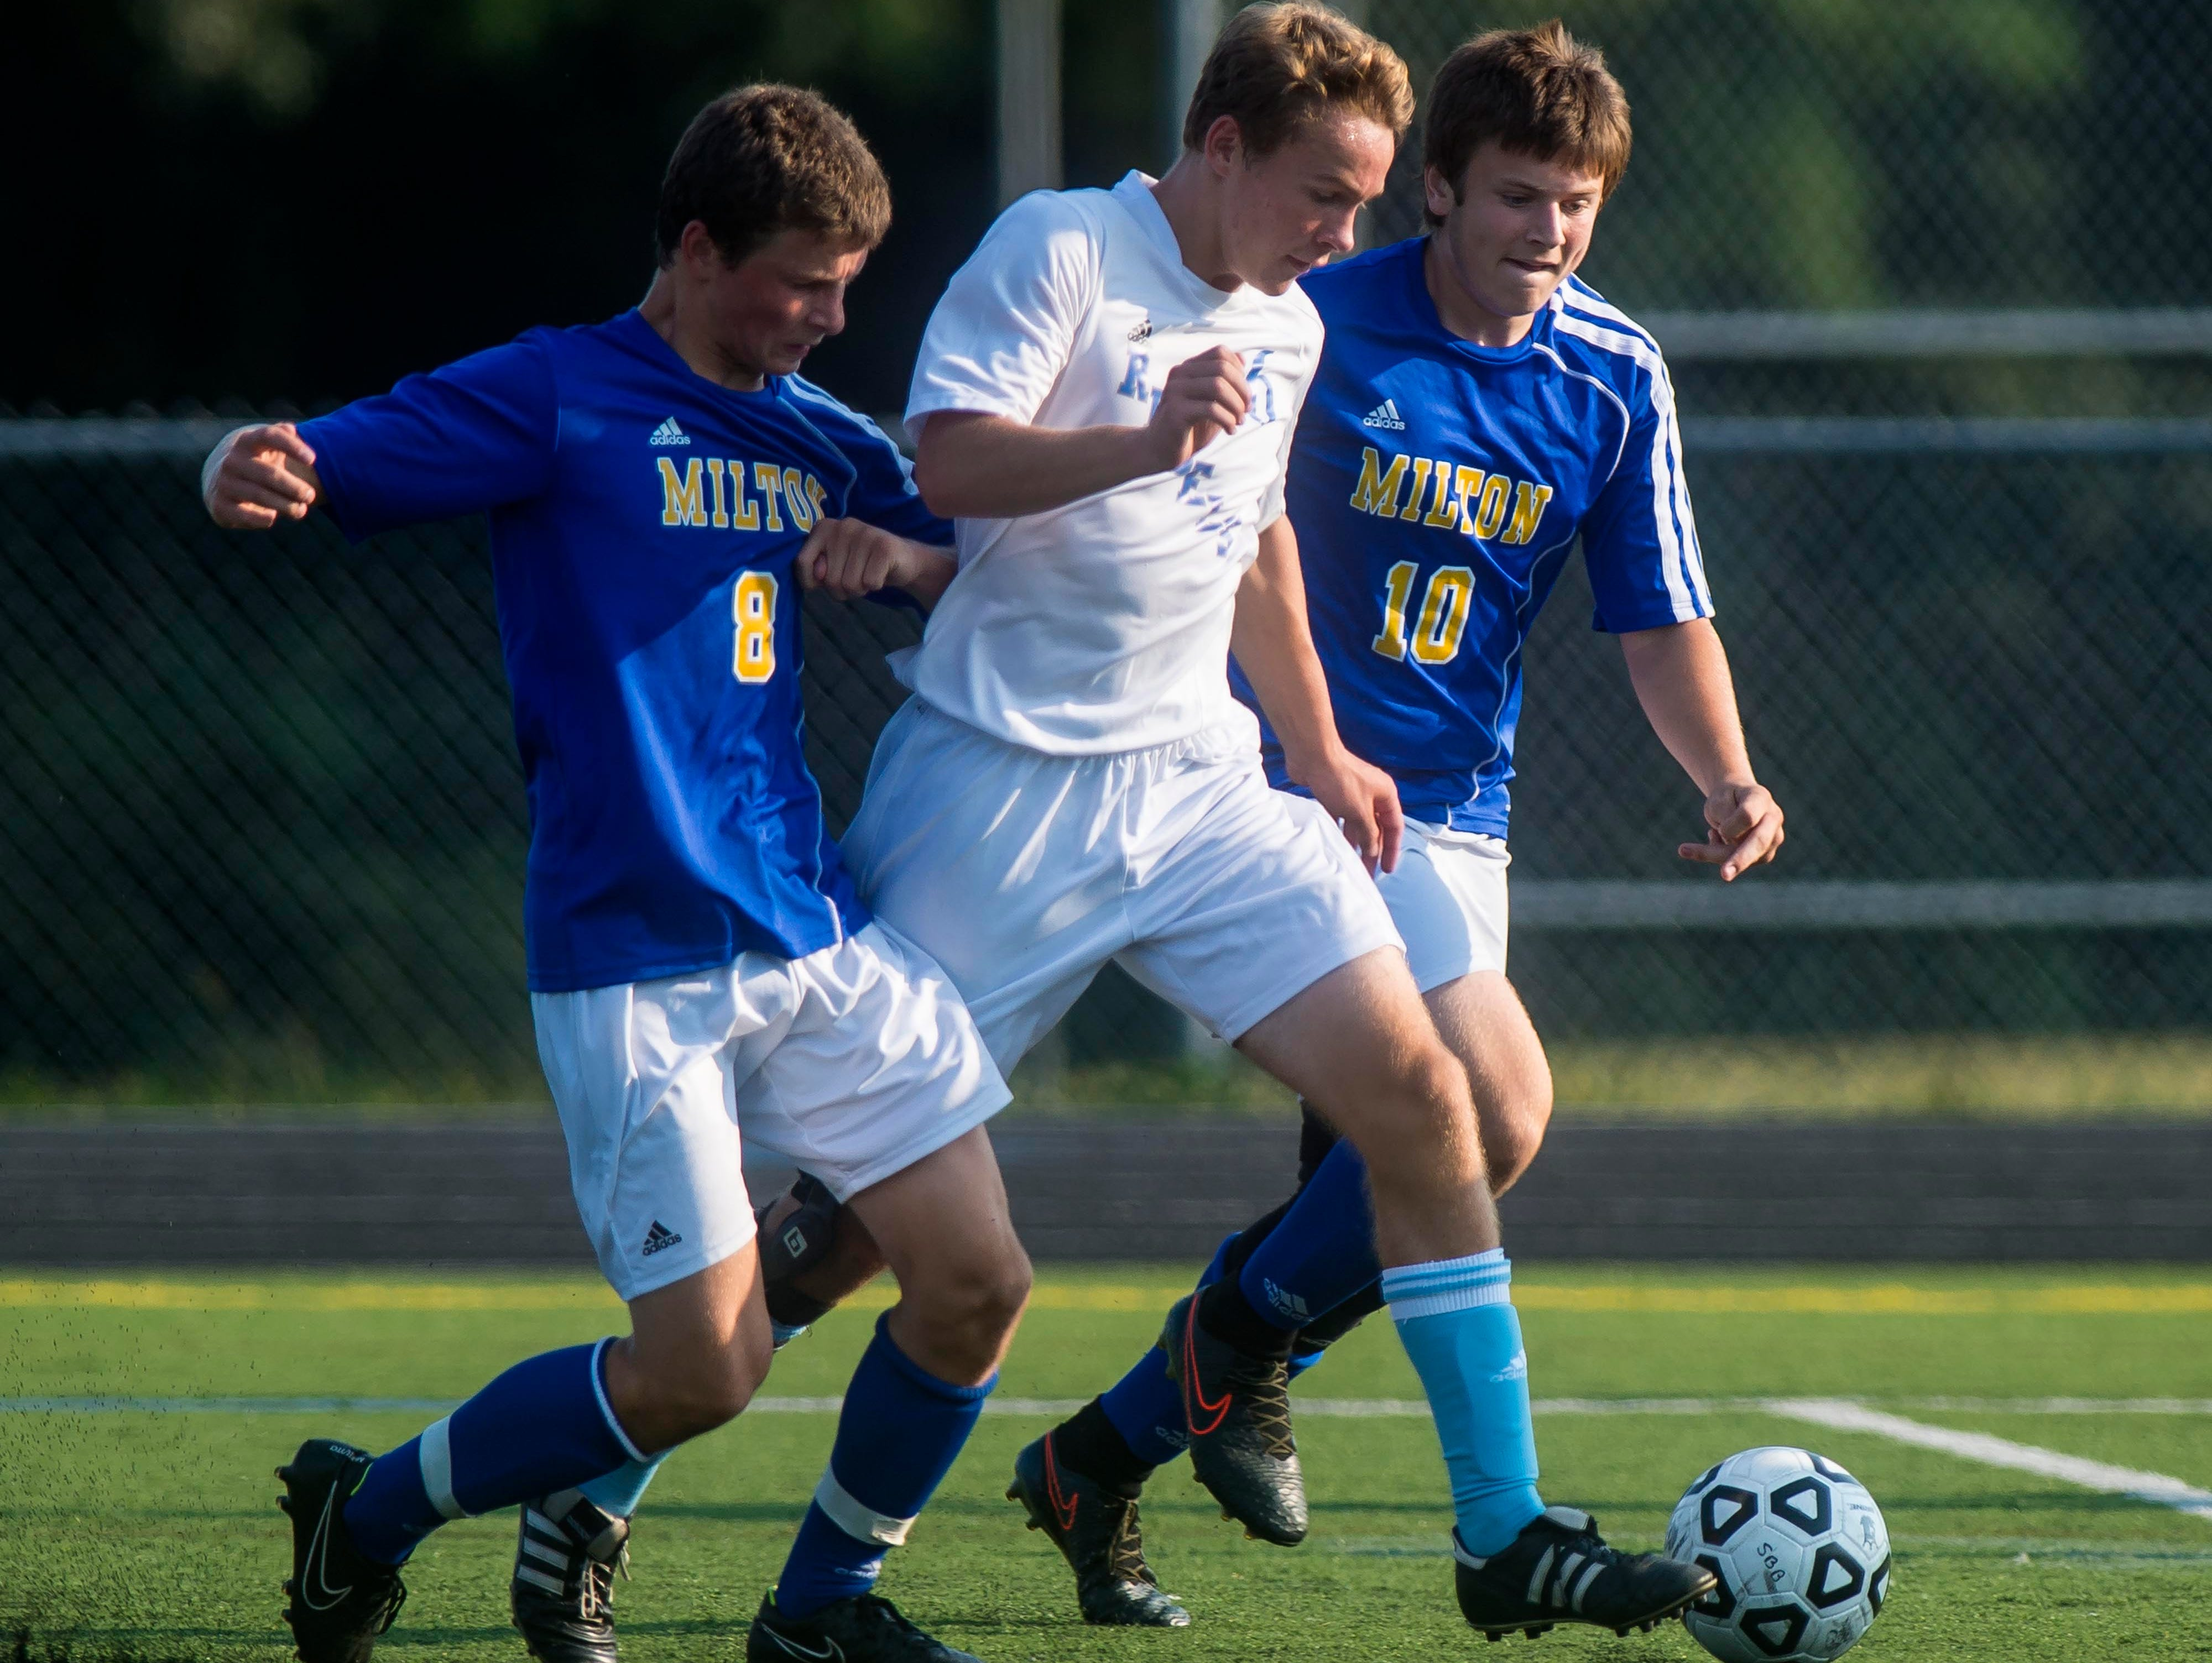 South Burlington's Patrick O'Hara, center, is pressured by Milton's Cam Goodrich, left, and Ryan Collette in South Burlington on Tuesday, September1, 2015.